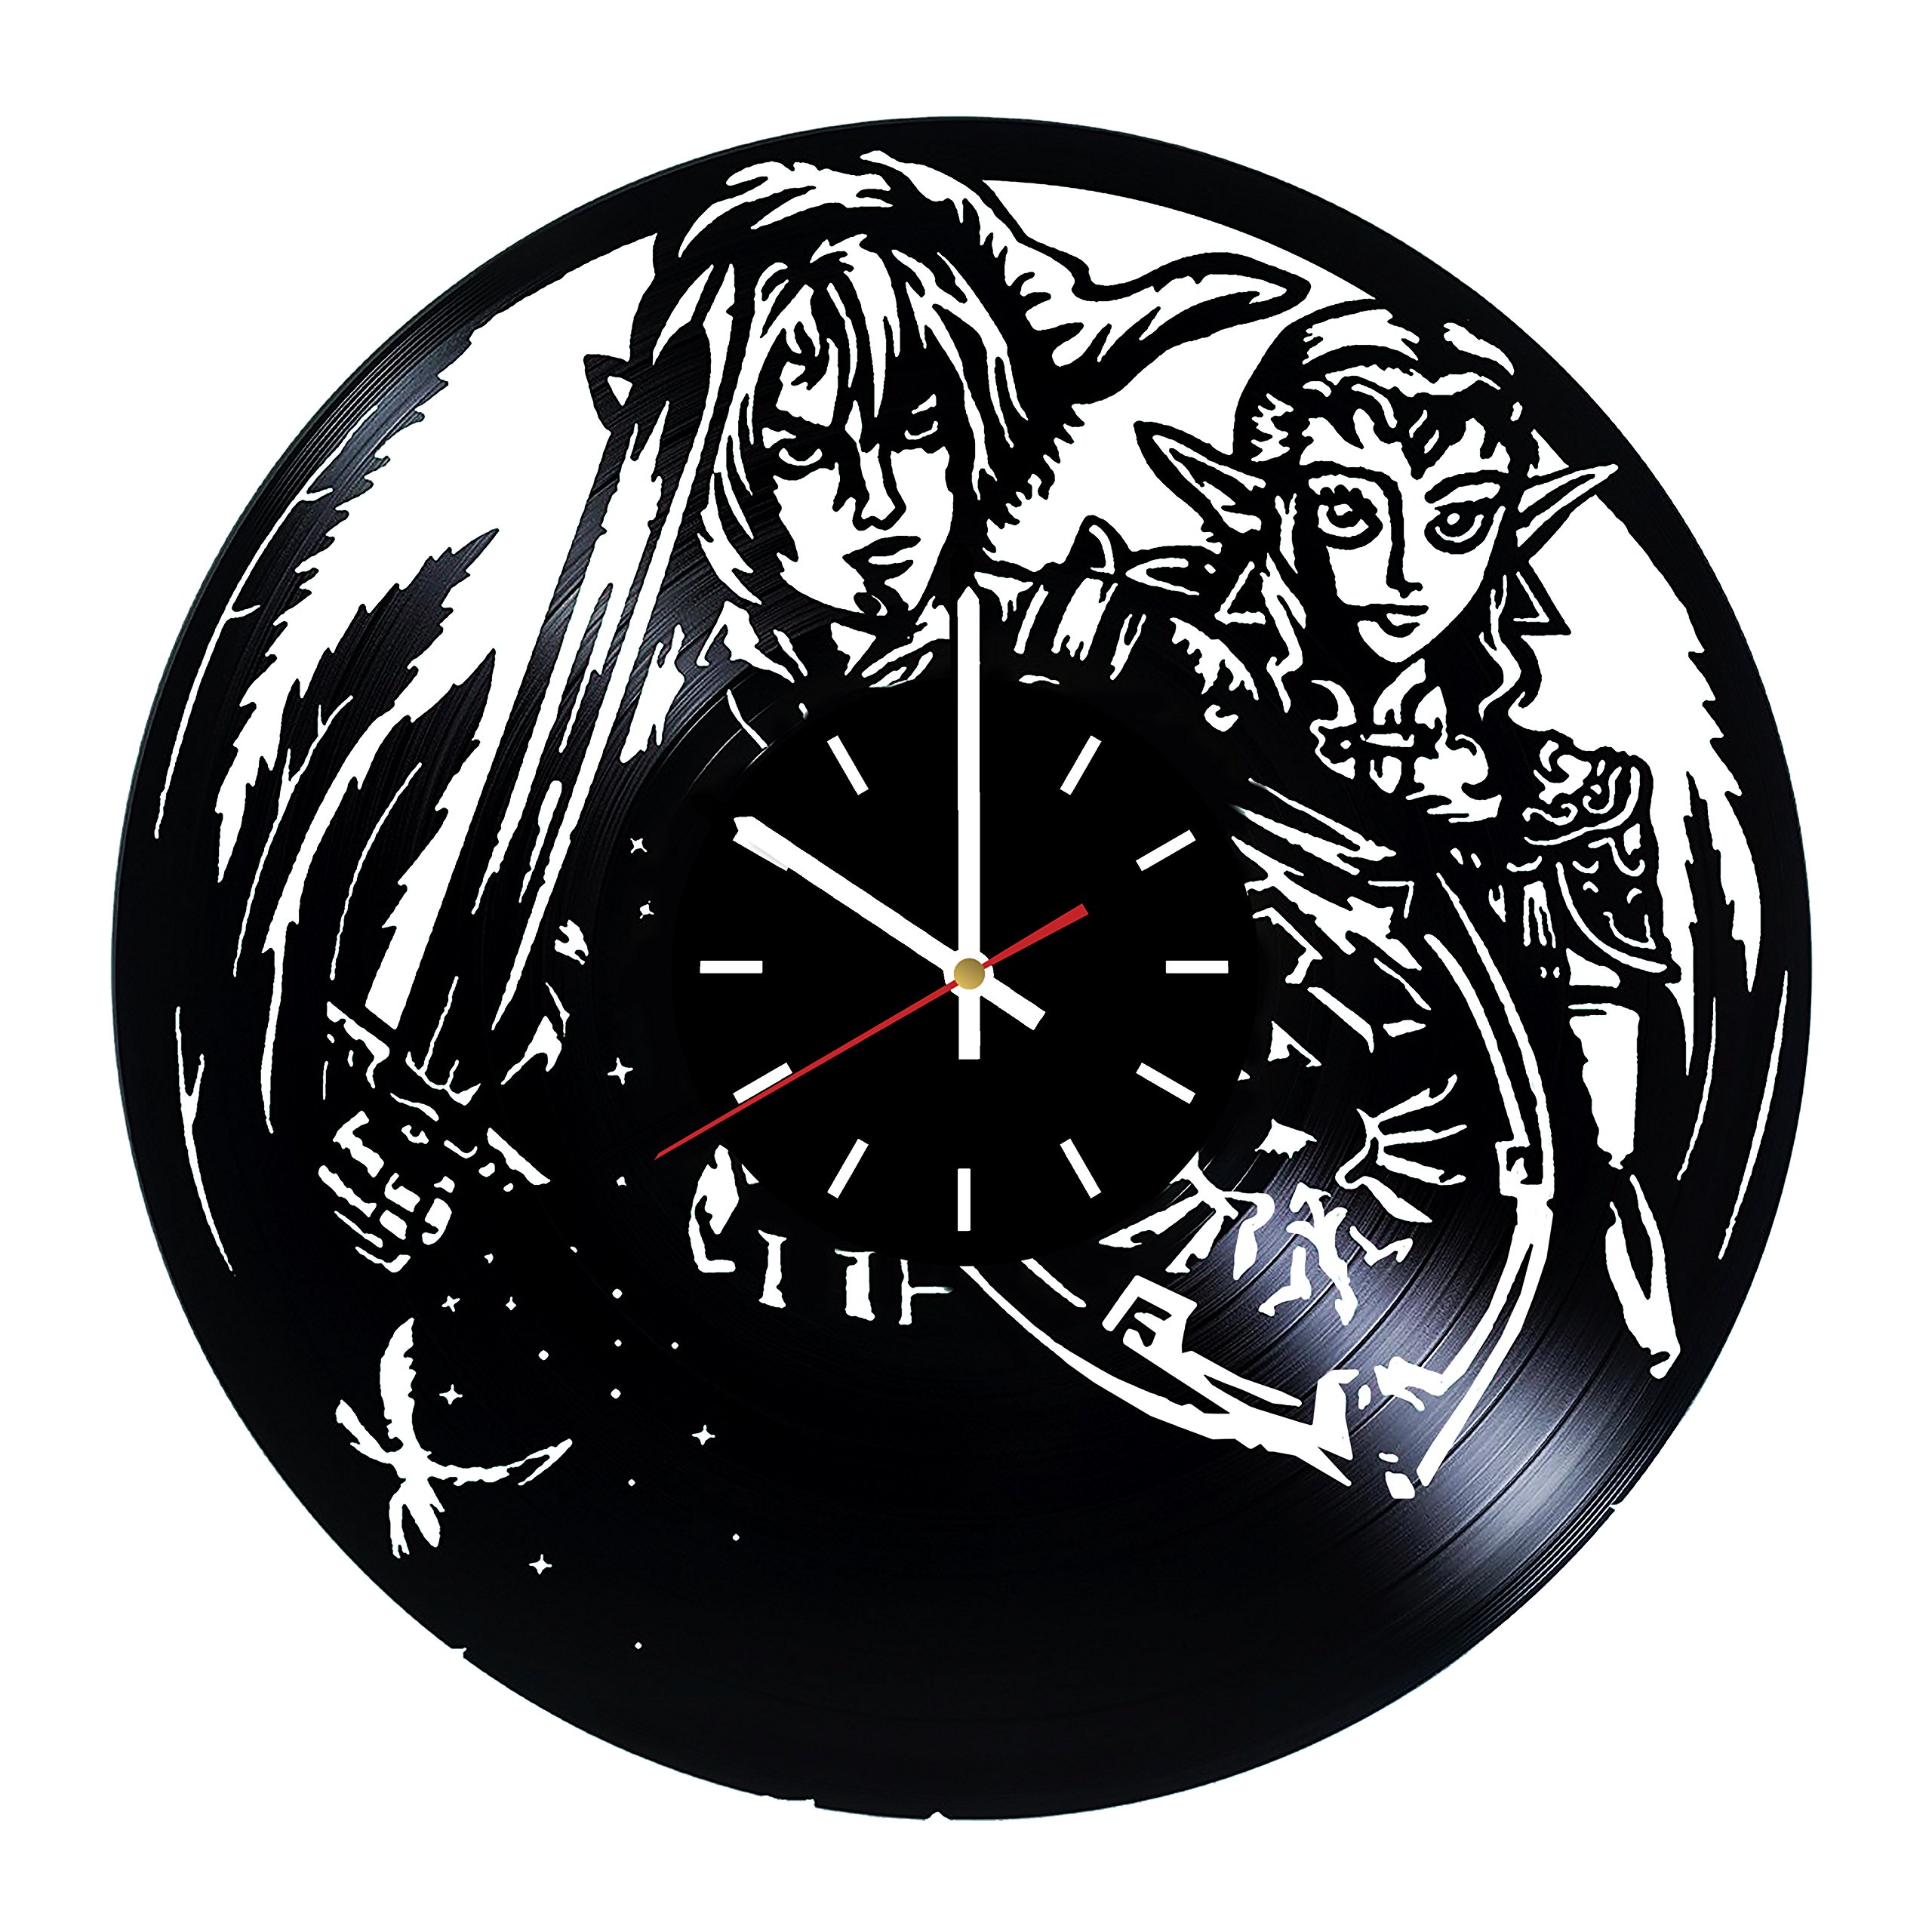 choma Zelda Video Game Vinyl Record Wall Clock - Kids Room Wall Decor - Gift Ideas for Friends, Brother and Sister - Unique Art Design